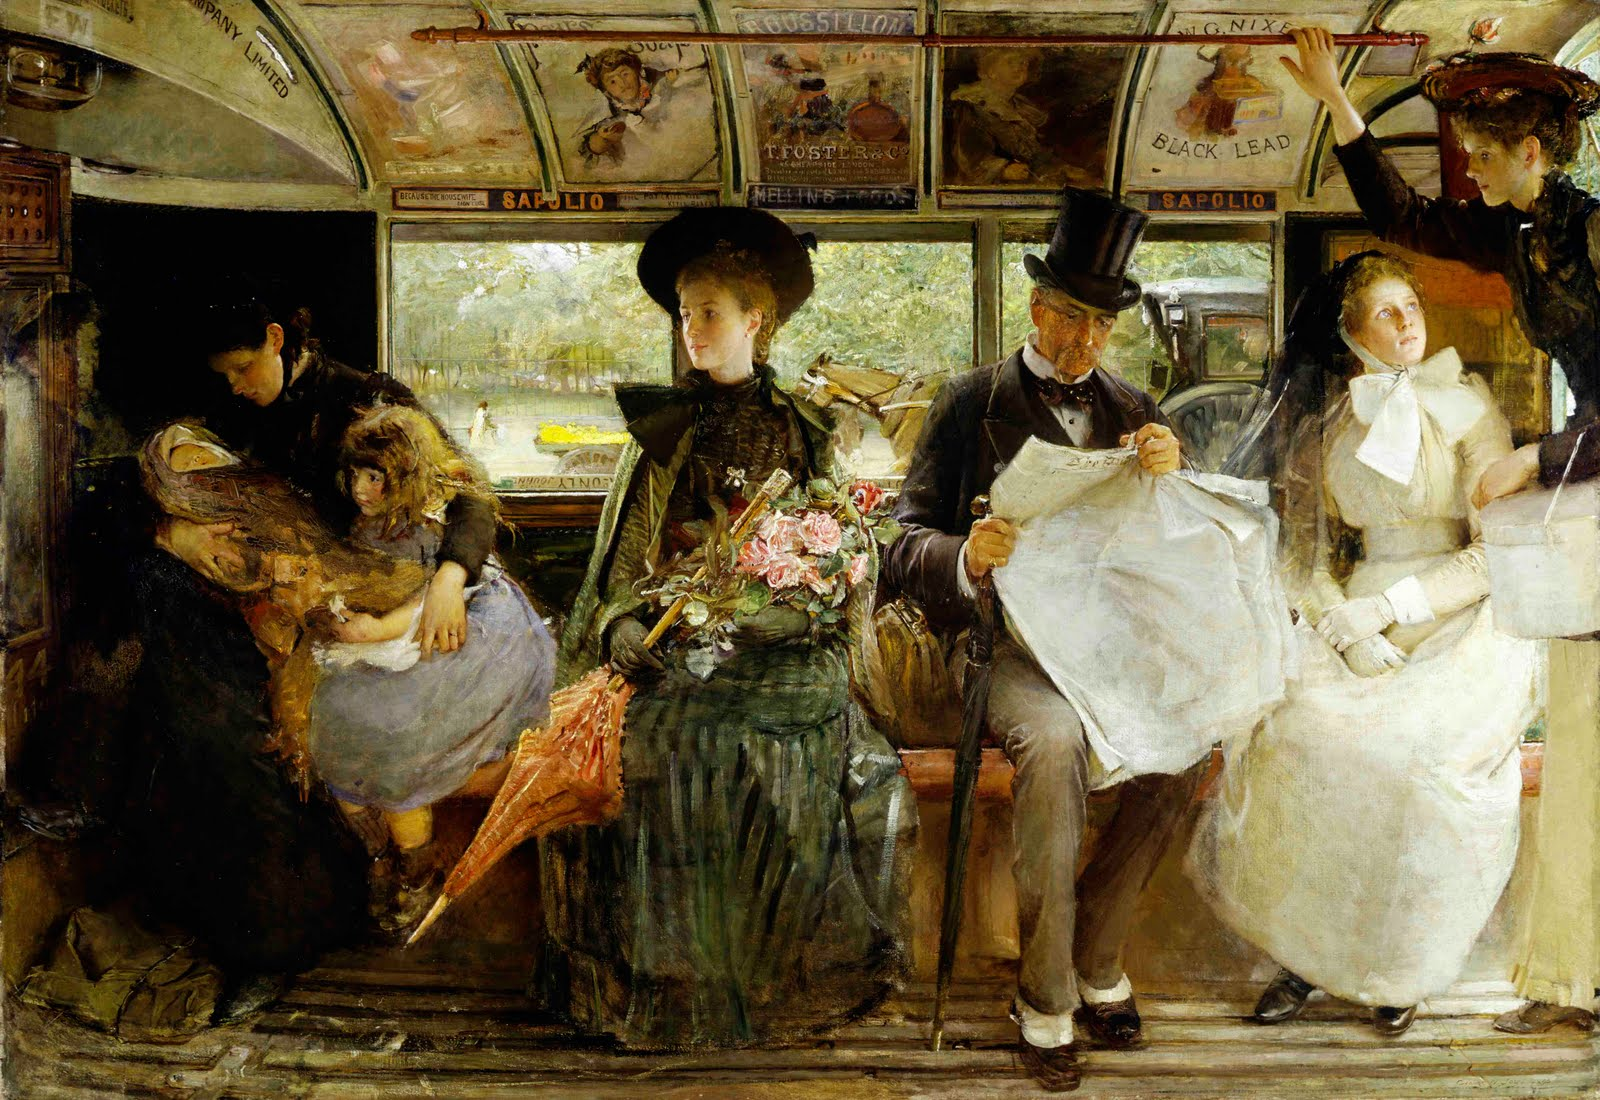 The Bayswater Omnibus by George William Joy (1855-1925)